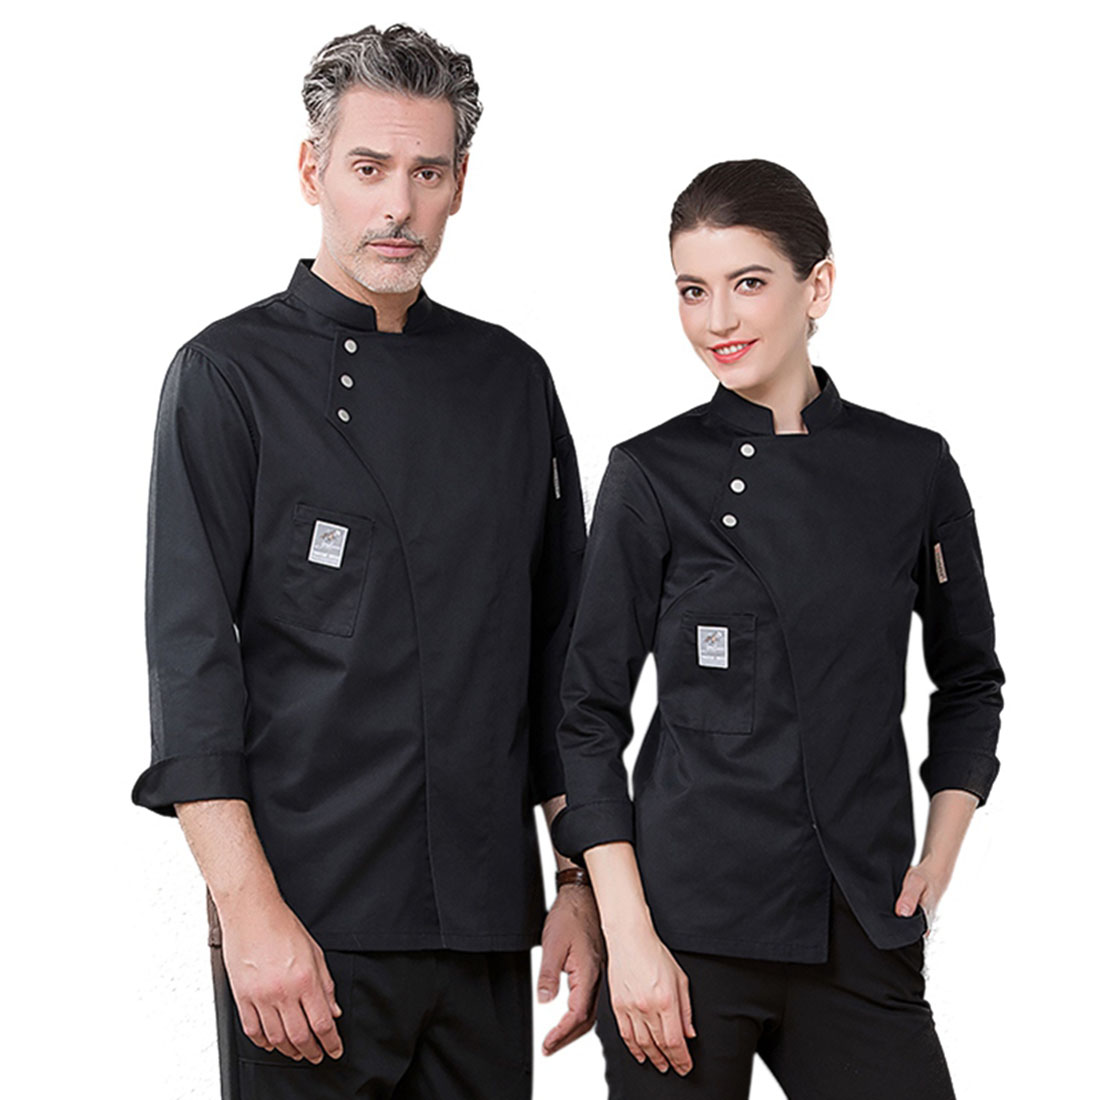 New Chef Uniform Unisex Chef Clothes Bakery Restaurant Kitchen Work Wear Long Sleeve Waitress Catering Chef Jackets Jaleco